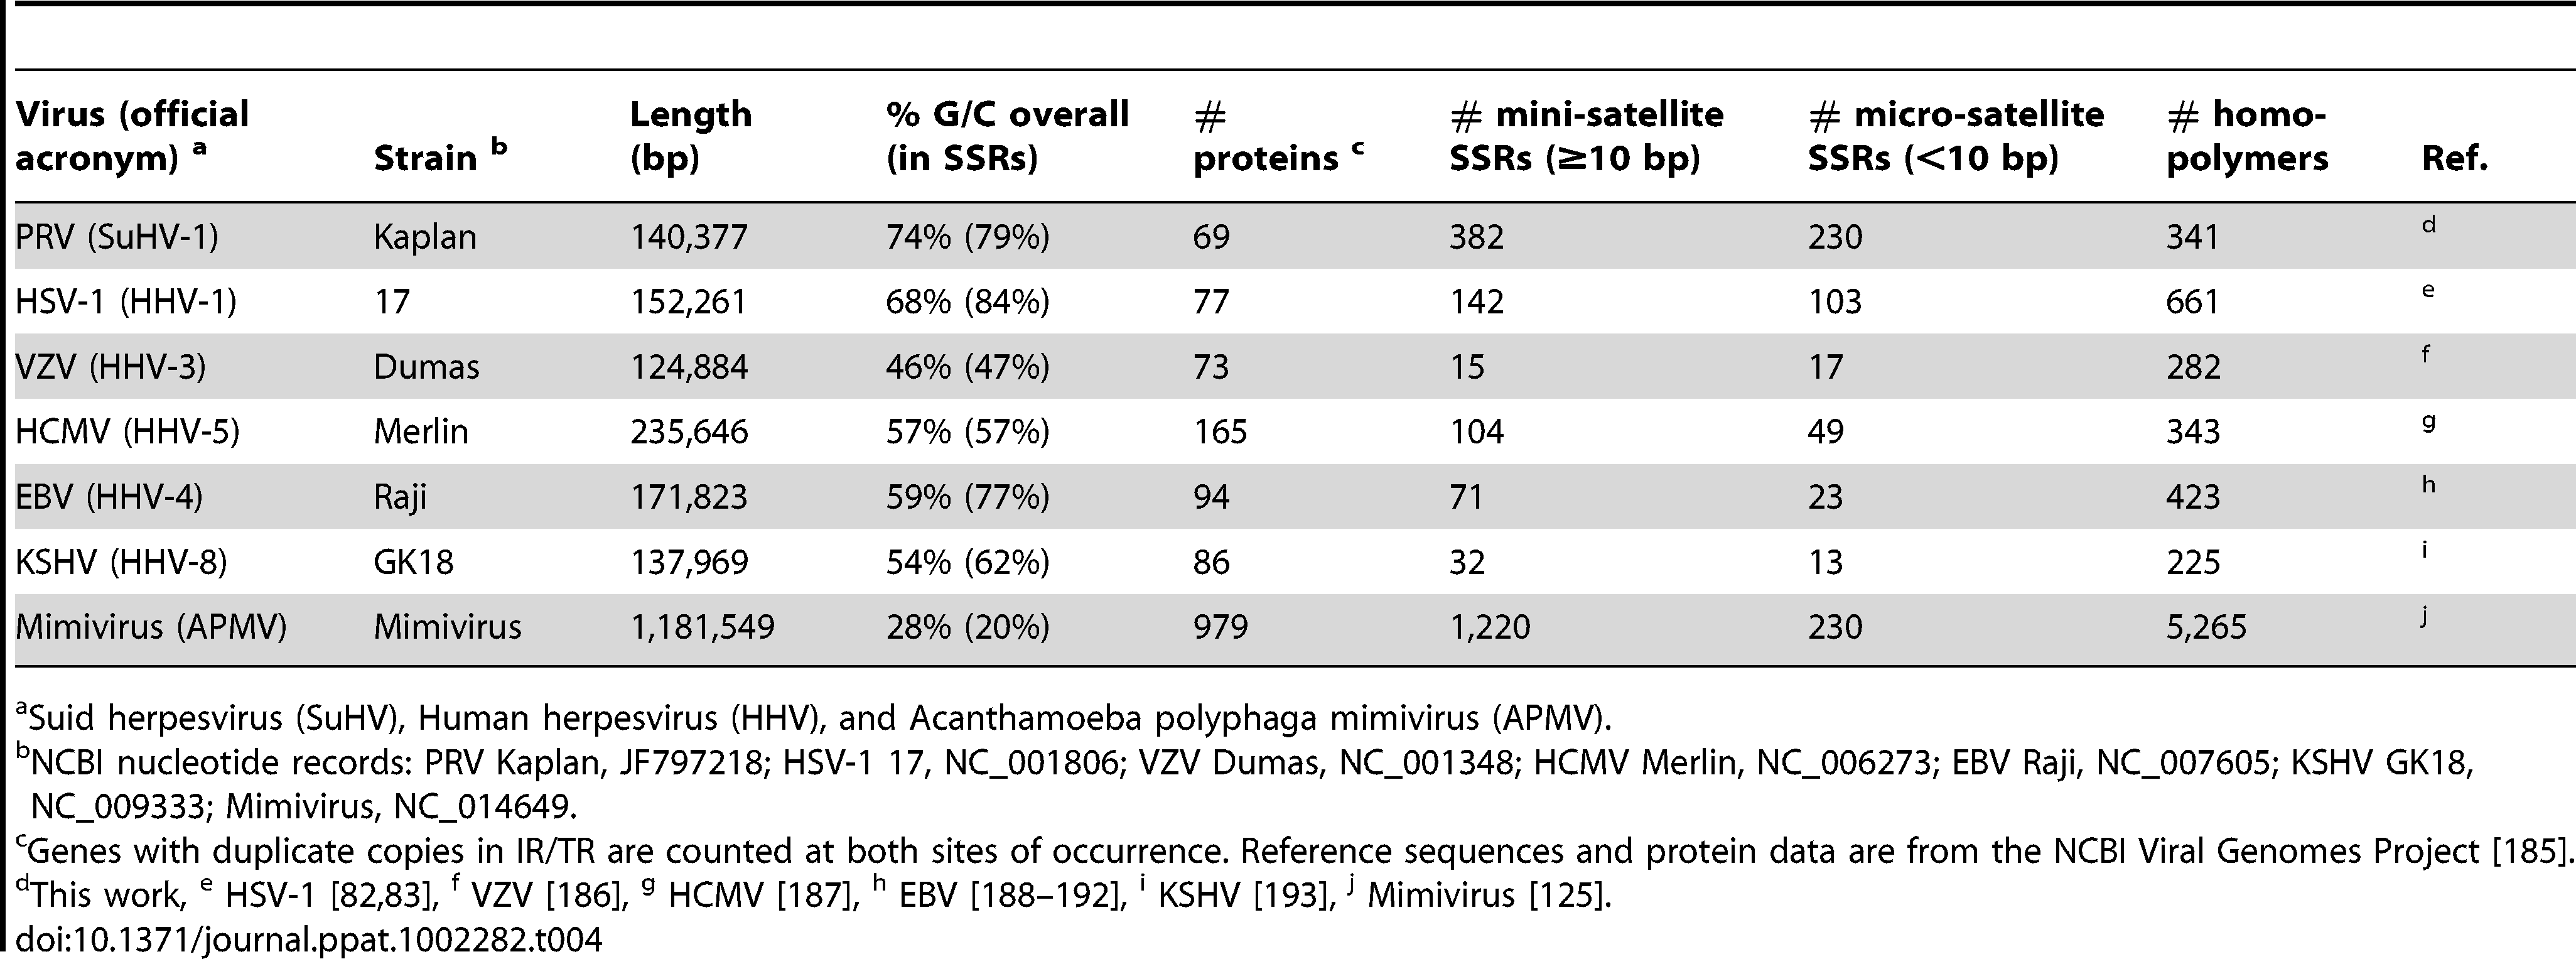 Comparison of ORF and SSR quantities in PRV, HSV-1, VZV, and Mimivirus.